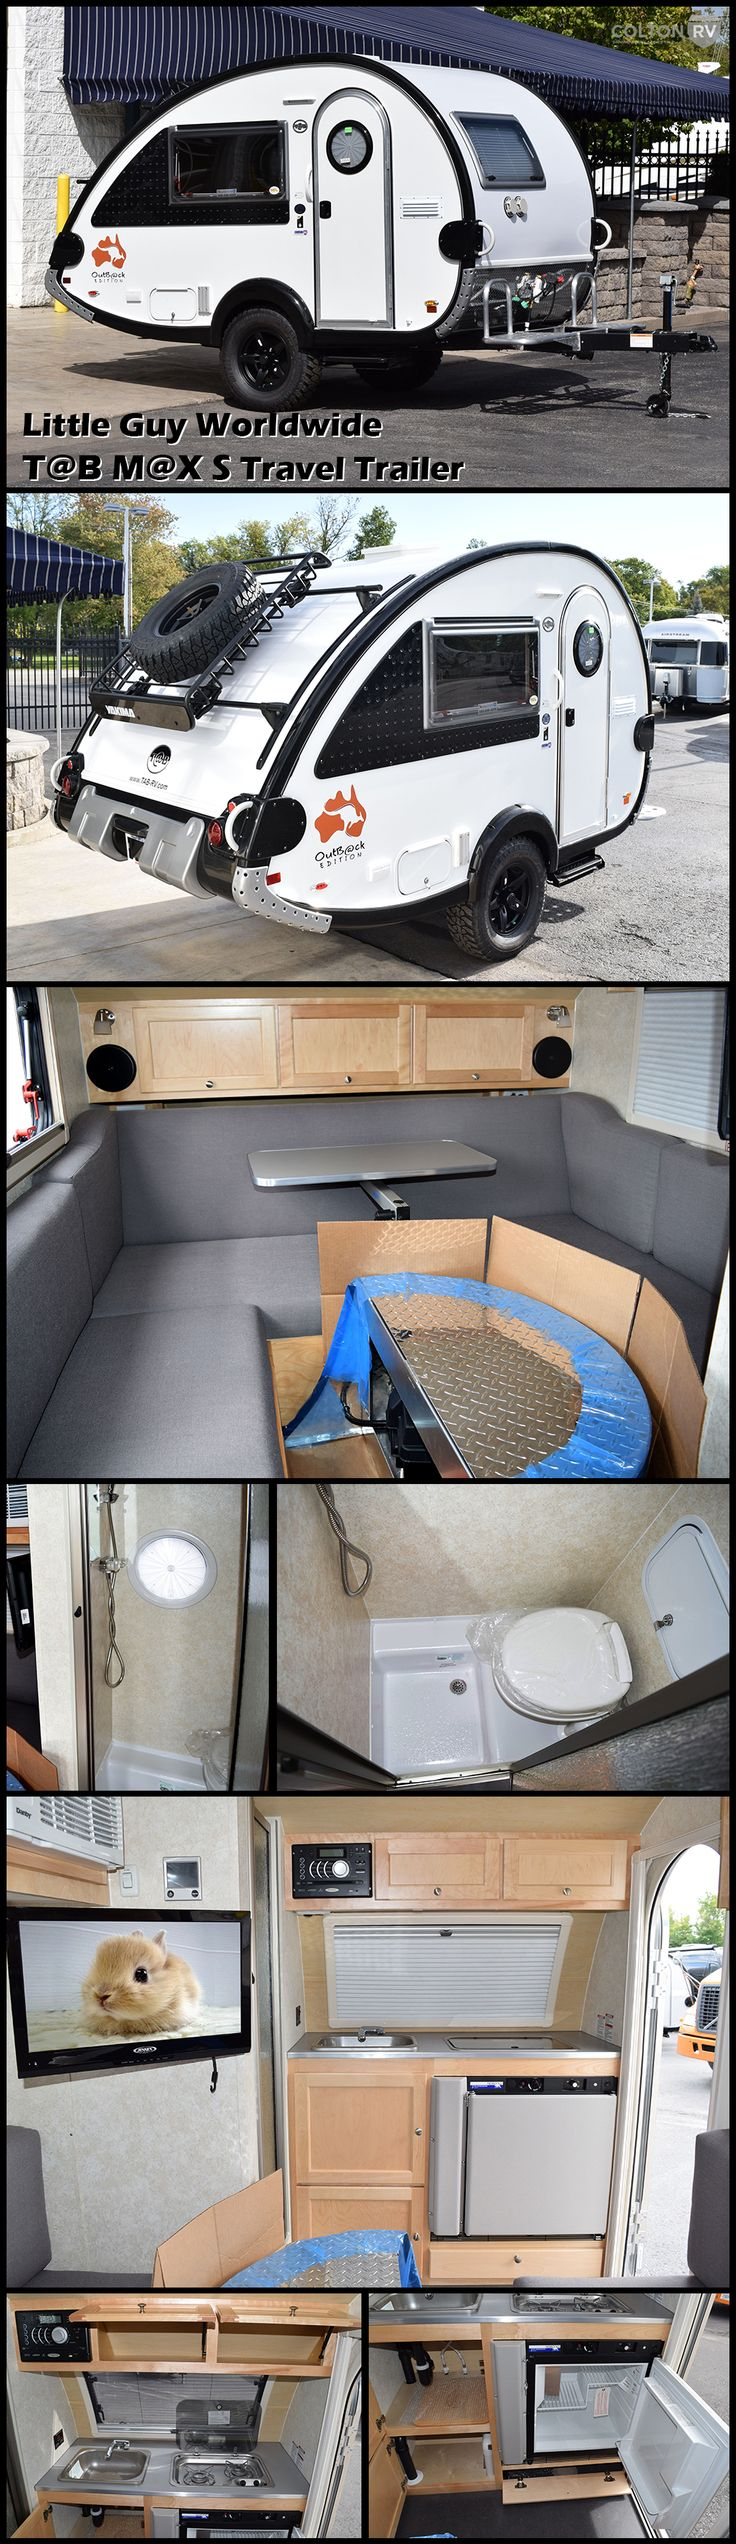 The LITTLE GUY WORLDWIDE T@B M@X S Teardrop Travel Trailer offers the lite footprint of teardrop camping without sacrificing your own personal toilet and shower. The S offers the traditional U kitchen